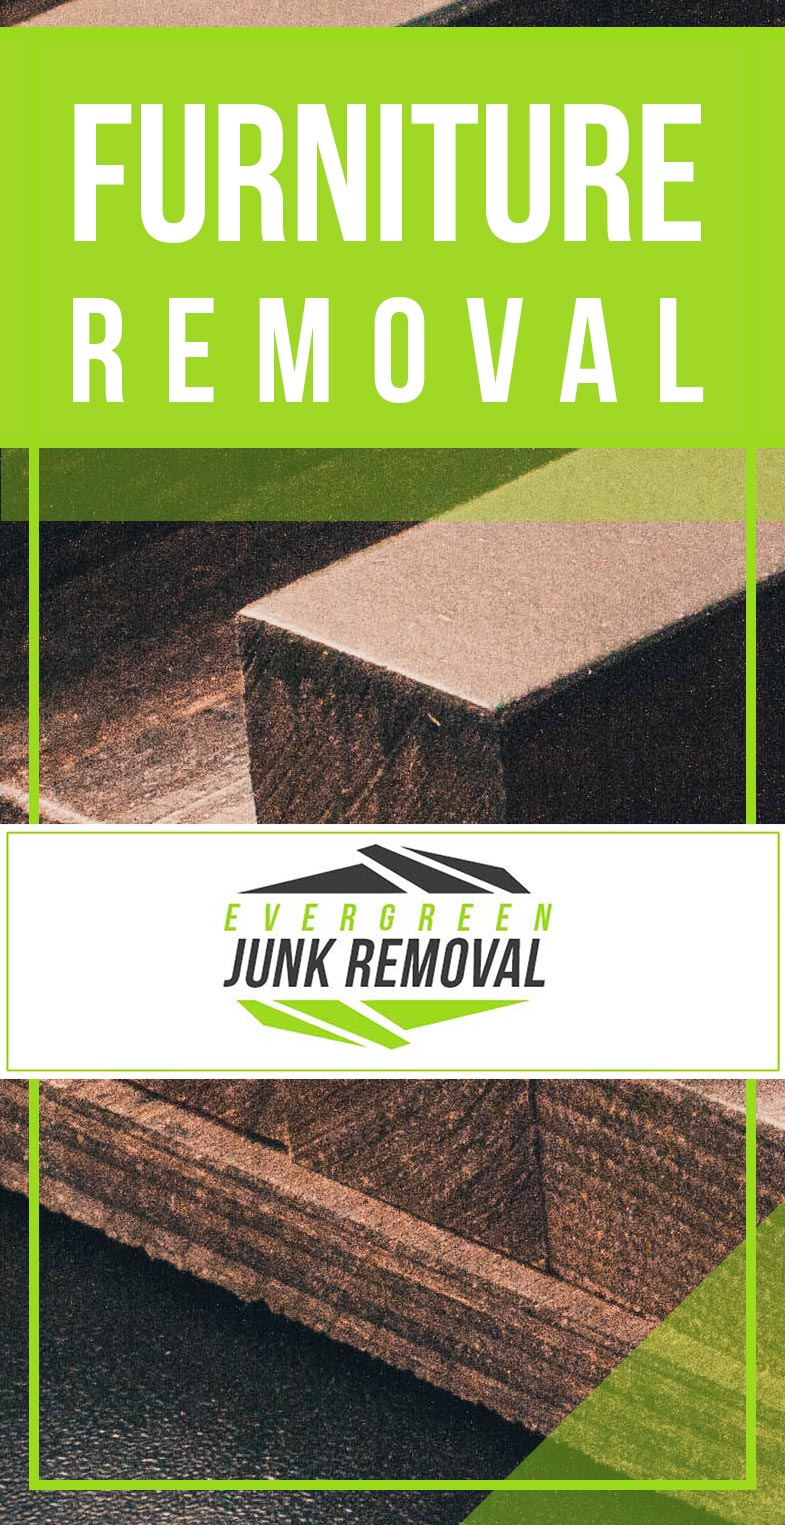 Junk Removal Palm Beach Furniture Removal